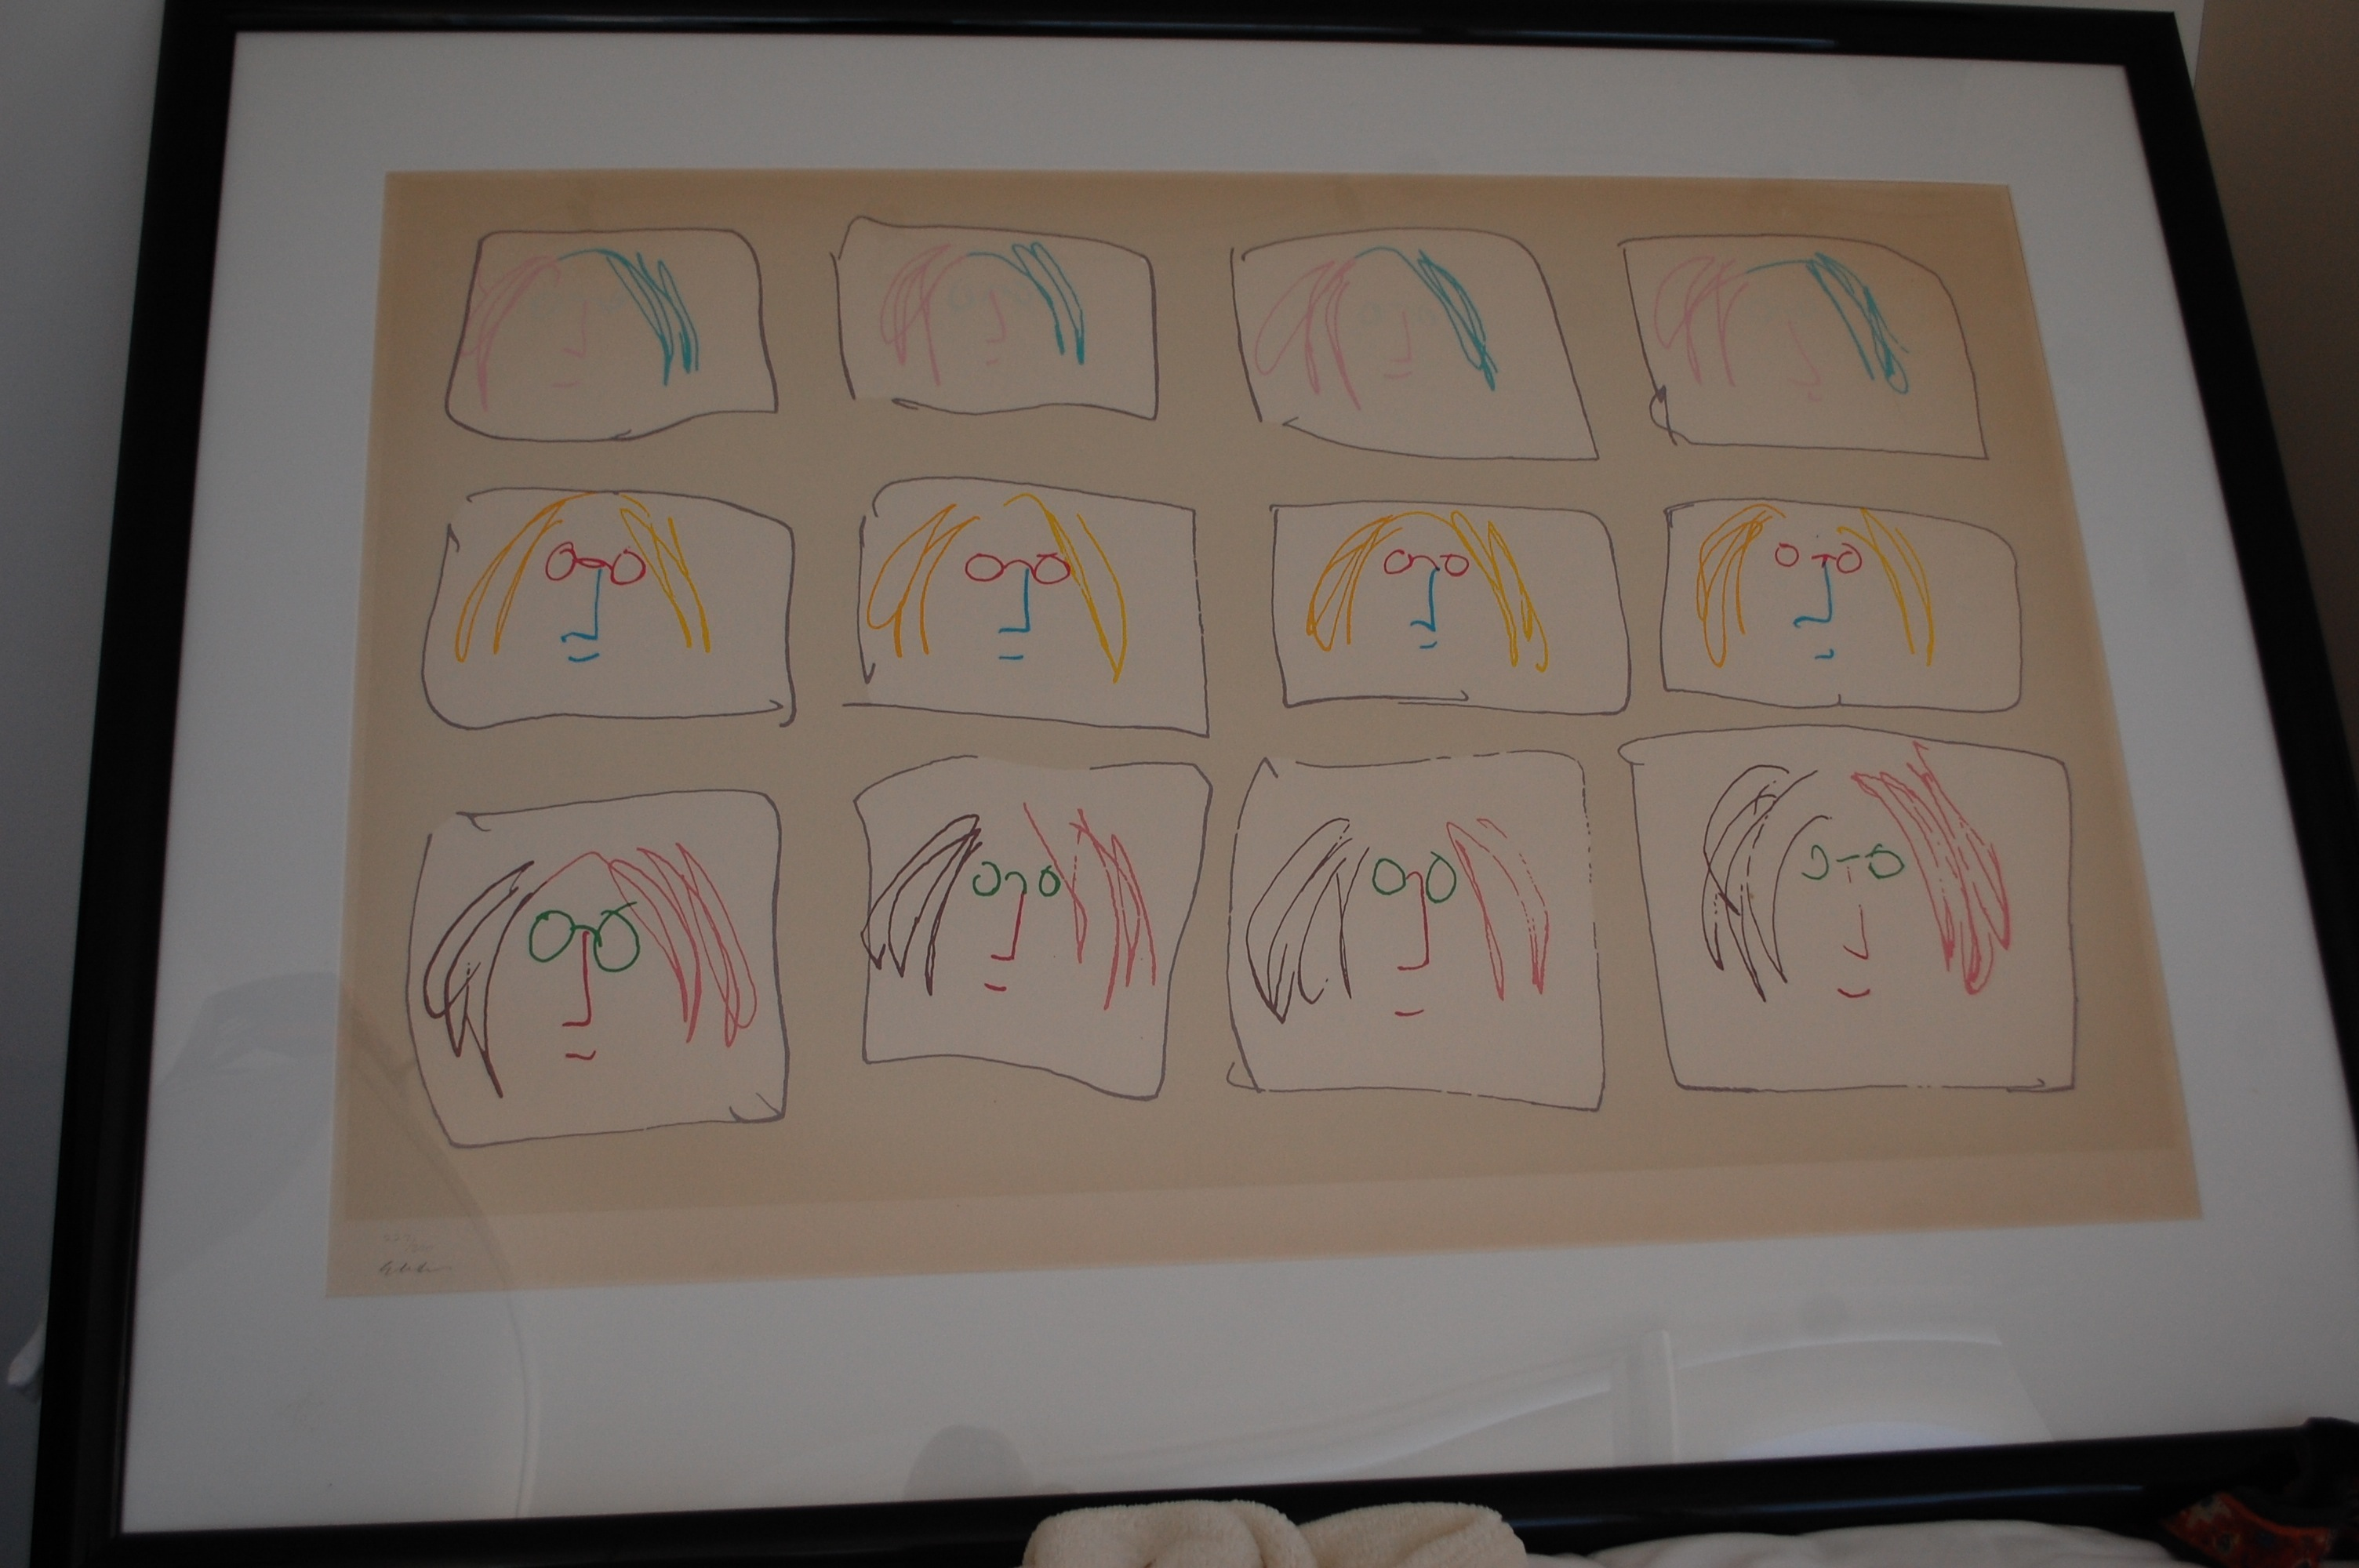 MULTIPLE SELF PORTRAIT artwork by John Lennon - art listed for sale on Artplode